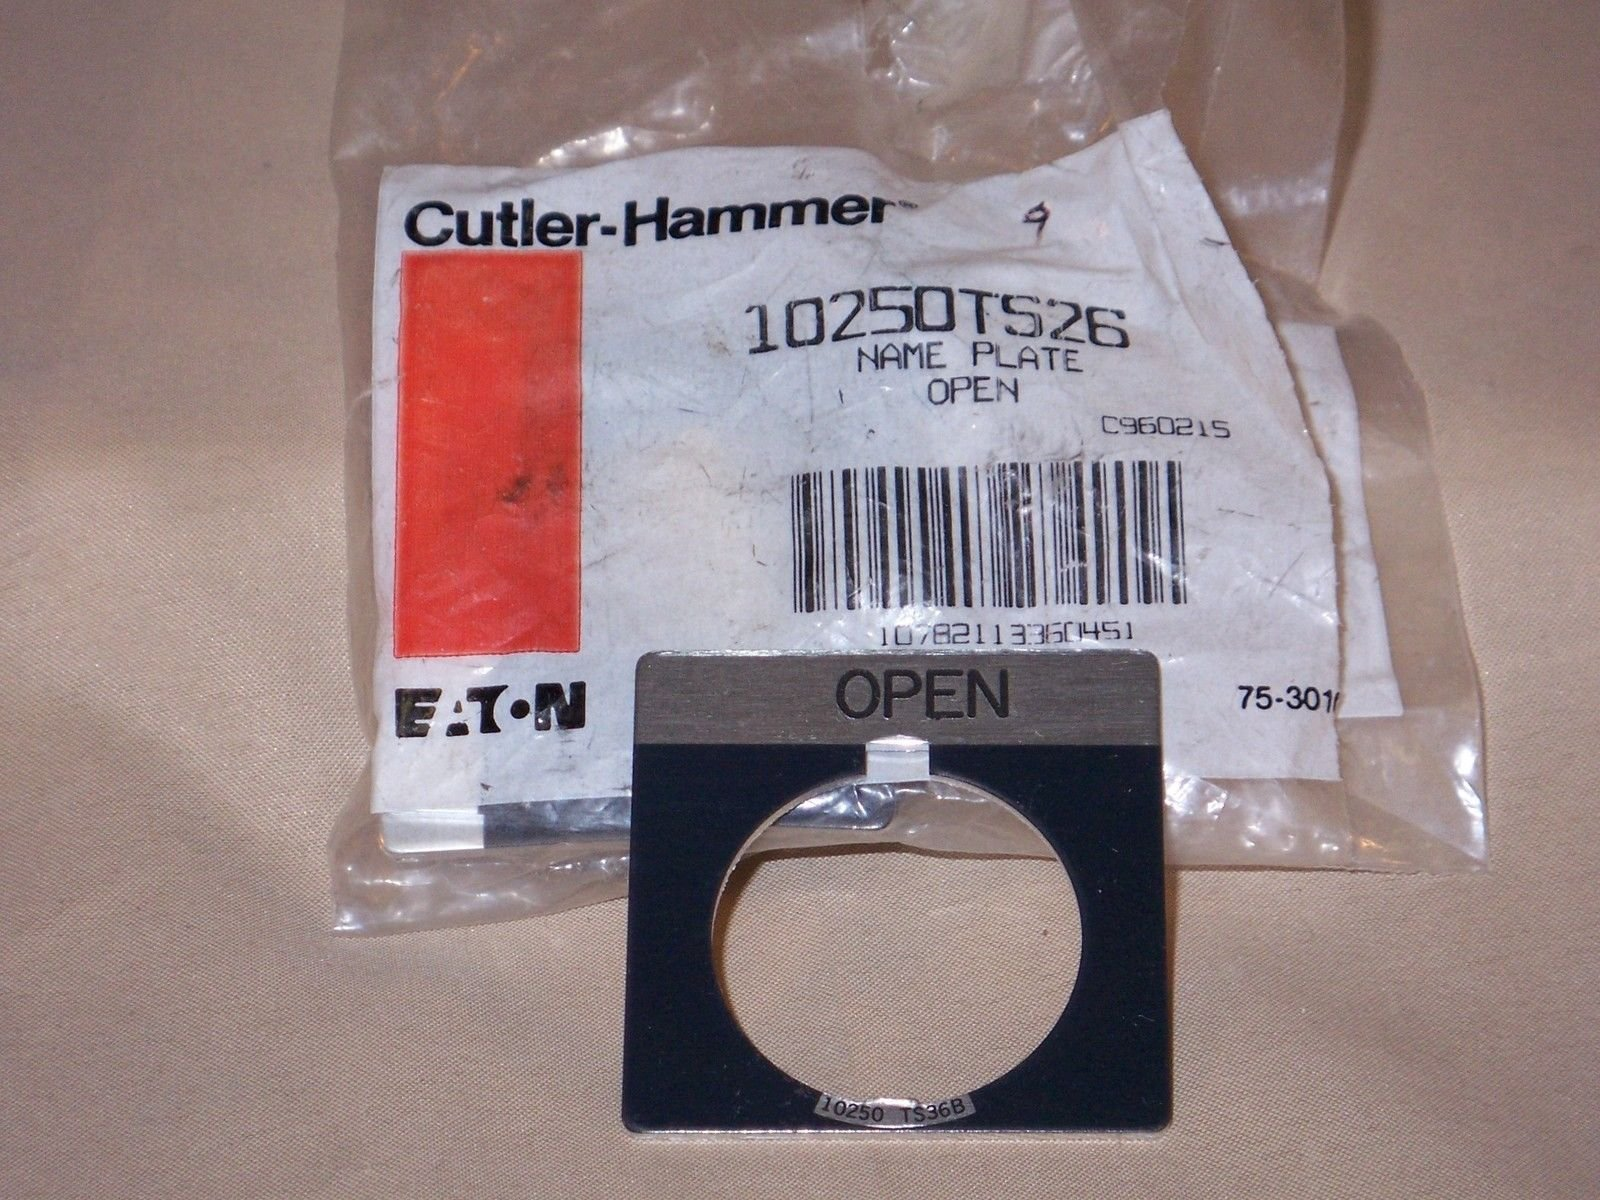 Cutler-Hammer 10250TS26 name plate--open